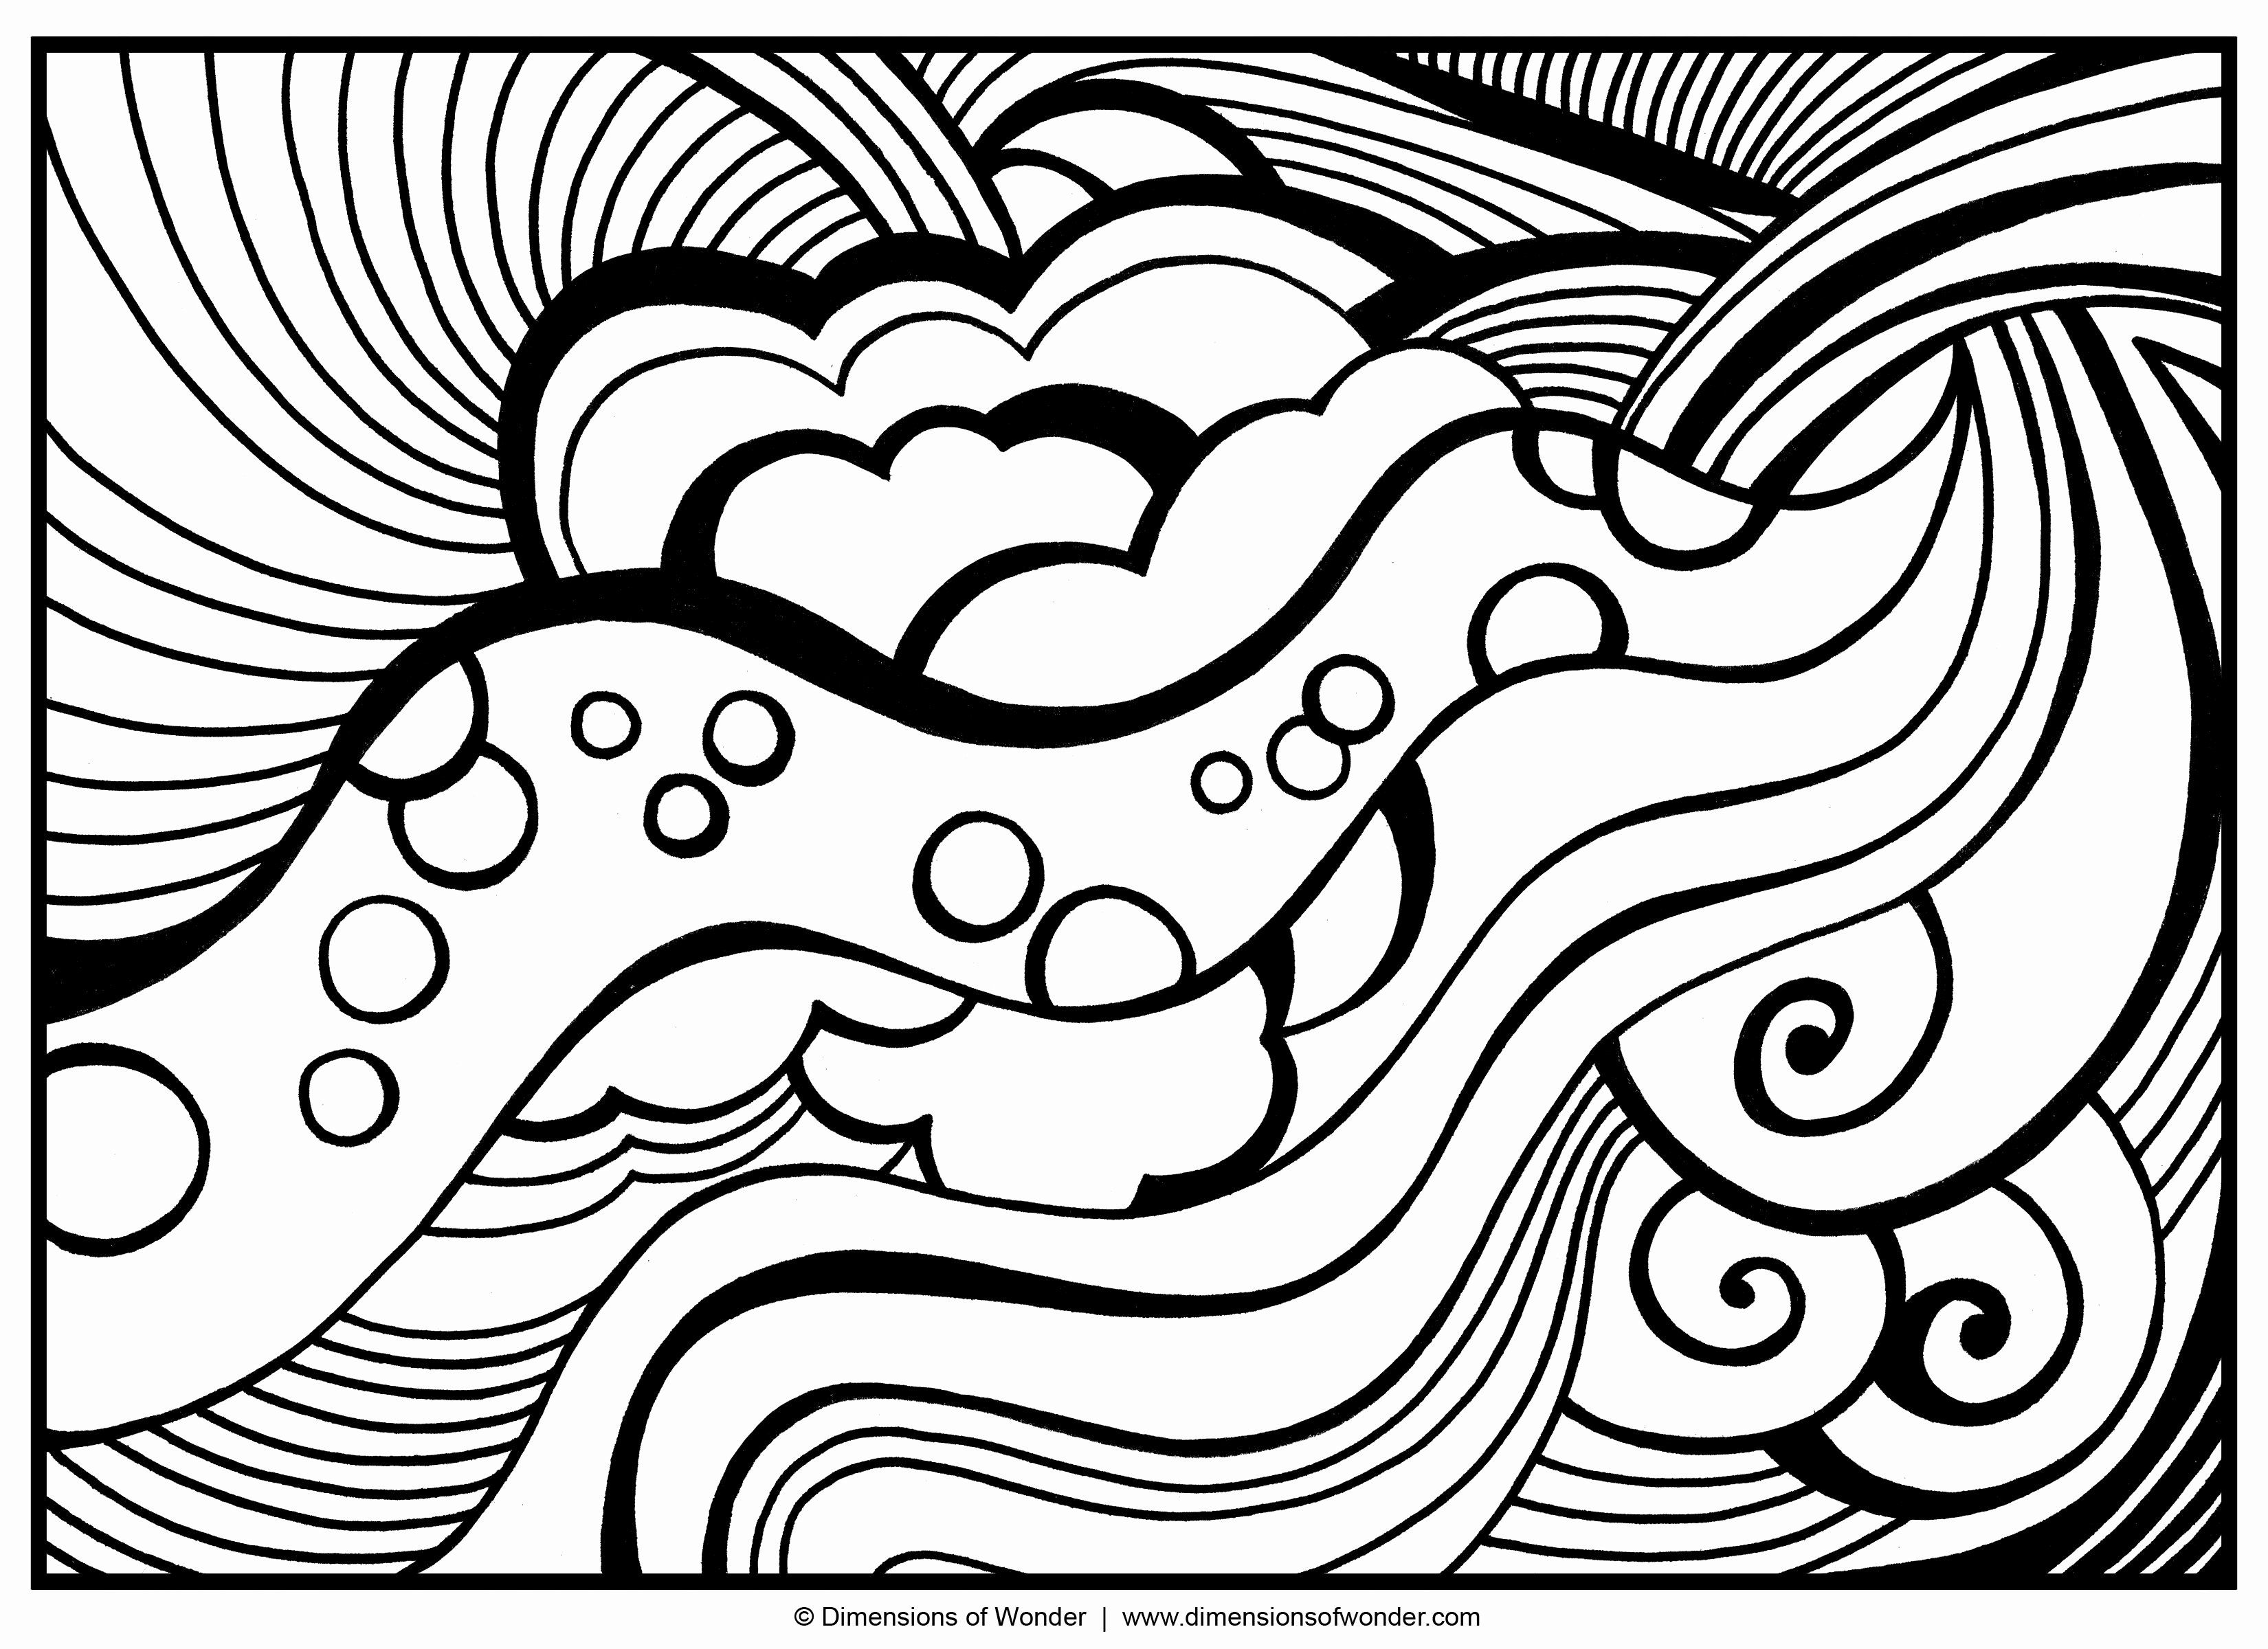 Pin By Jennifer Karen On B W Pattern Illustrations In 2020 Abstract Coloring Pages Coloring Pages For Teenagers Easy Coloring Pages